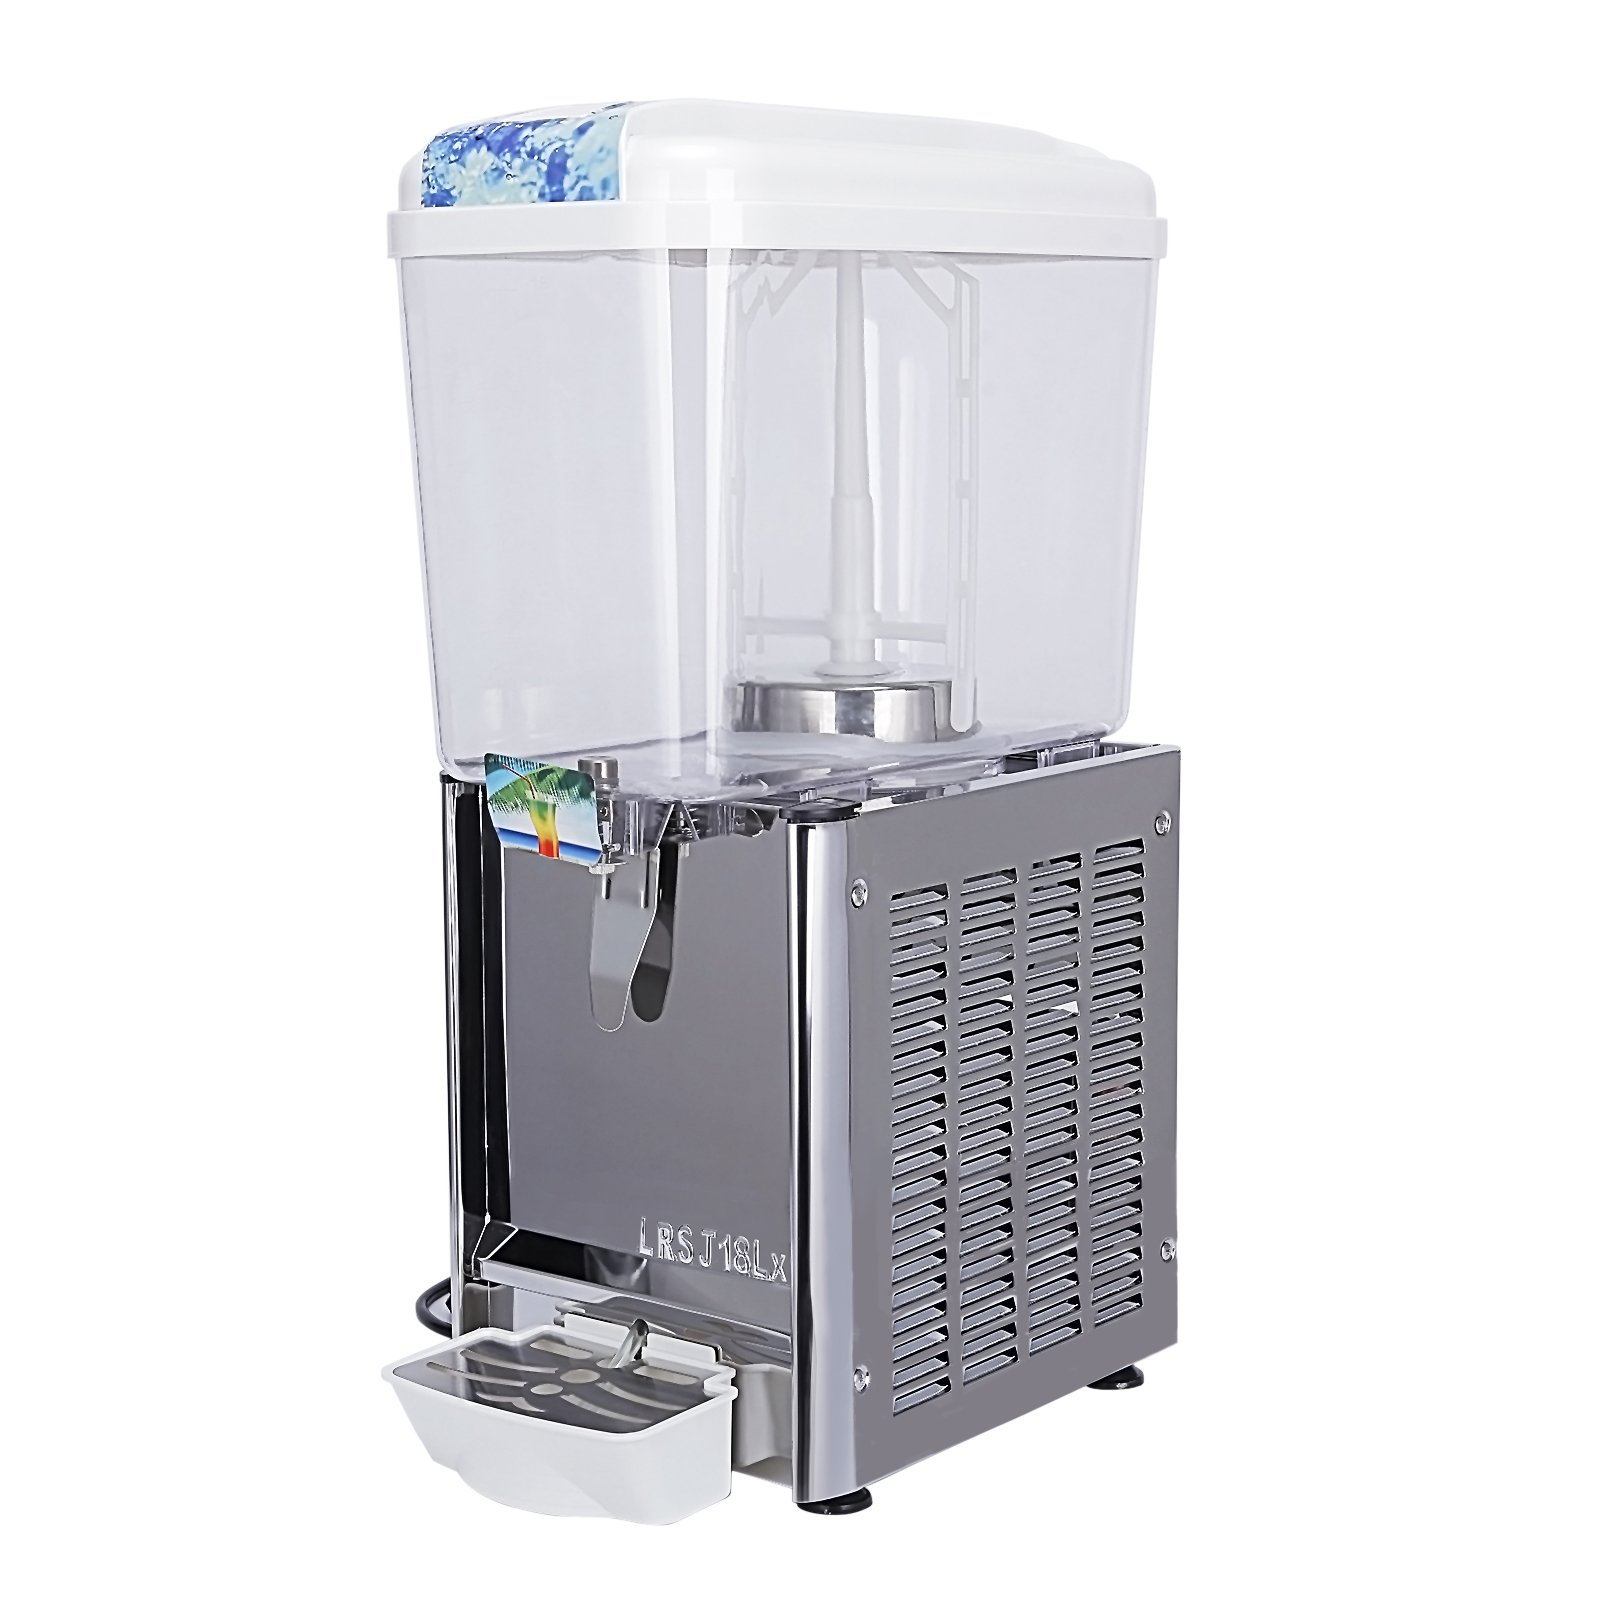 KUPPET Commercial Beverage/Juice/Drink Dispenser For Cold & Hot Drink, 4.75 Gallon 1 Tank, Restaurant Buffet Food Service Catering Beverage Dispensers, Cold 180W Hot 540W